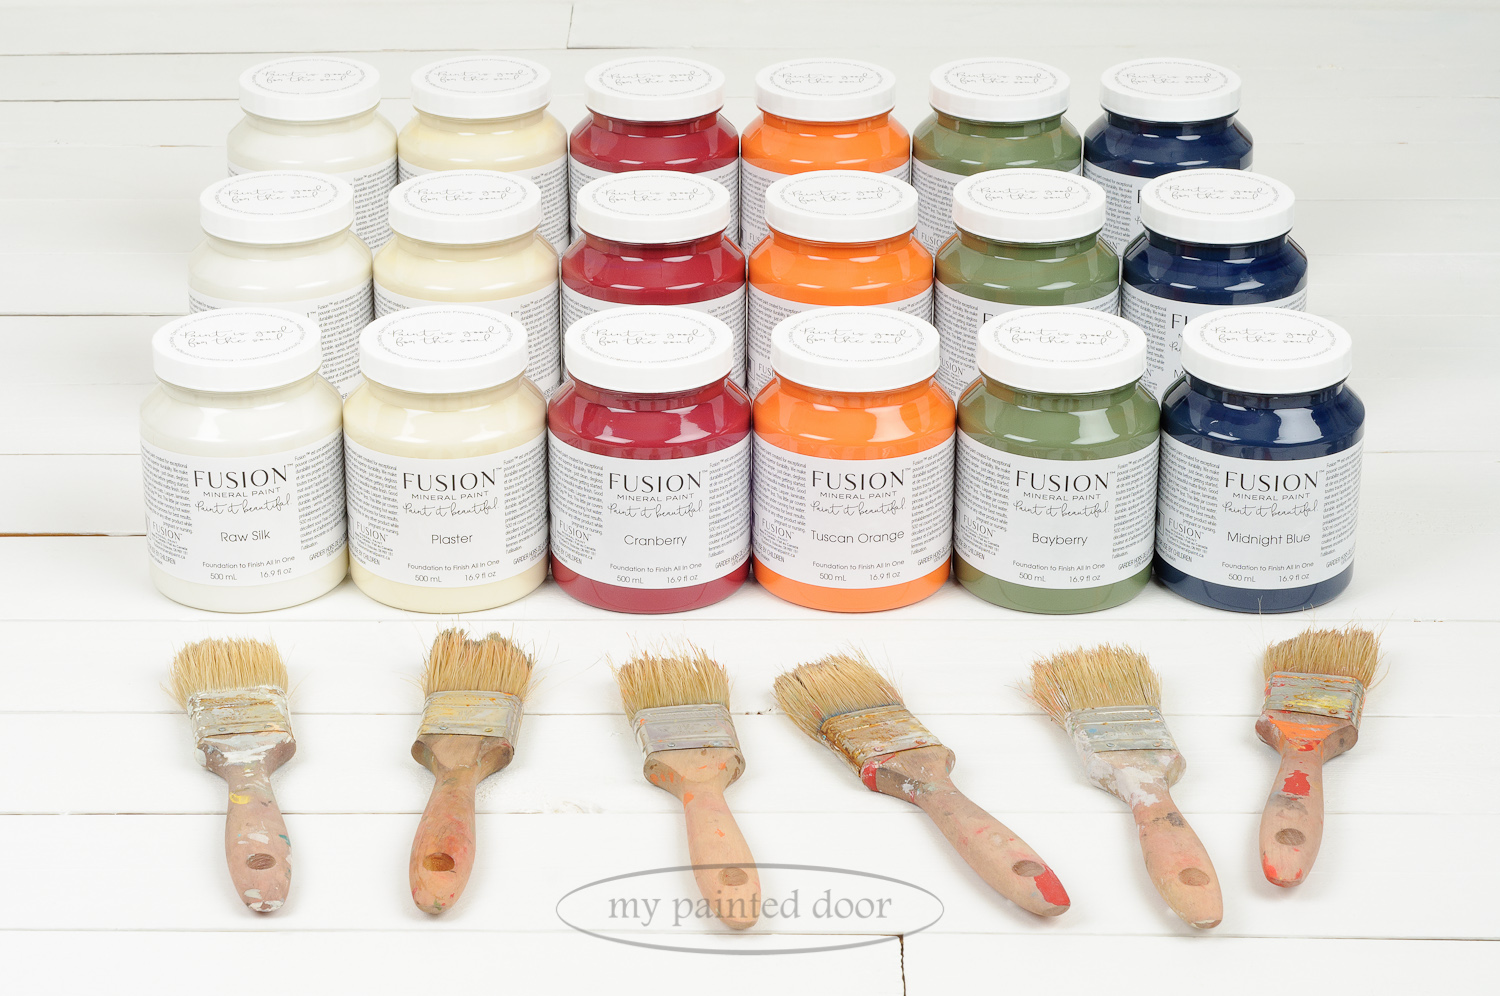 13 New Fusion Mineral Paint colours to choose from! Here are six new colours in the Classic Fusion Line. Available at My Painted Door!